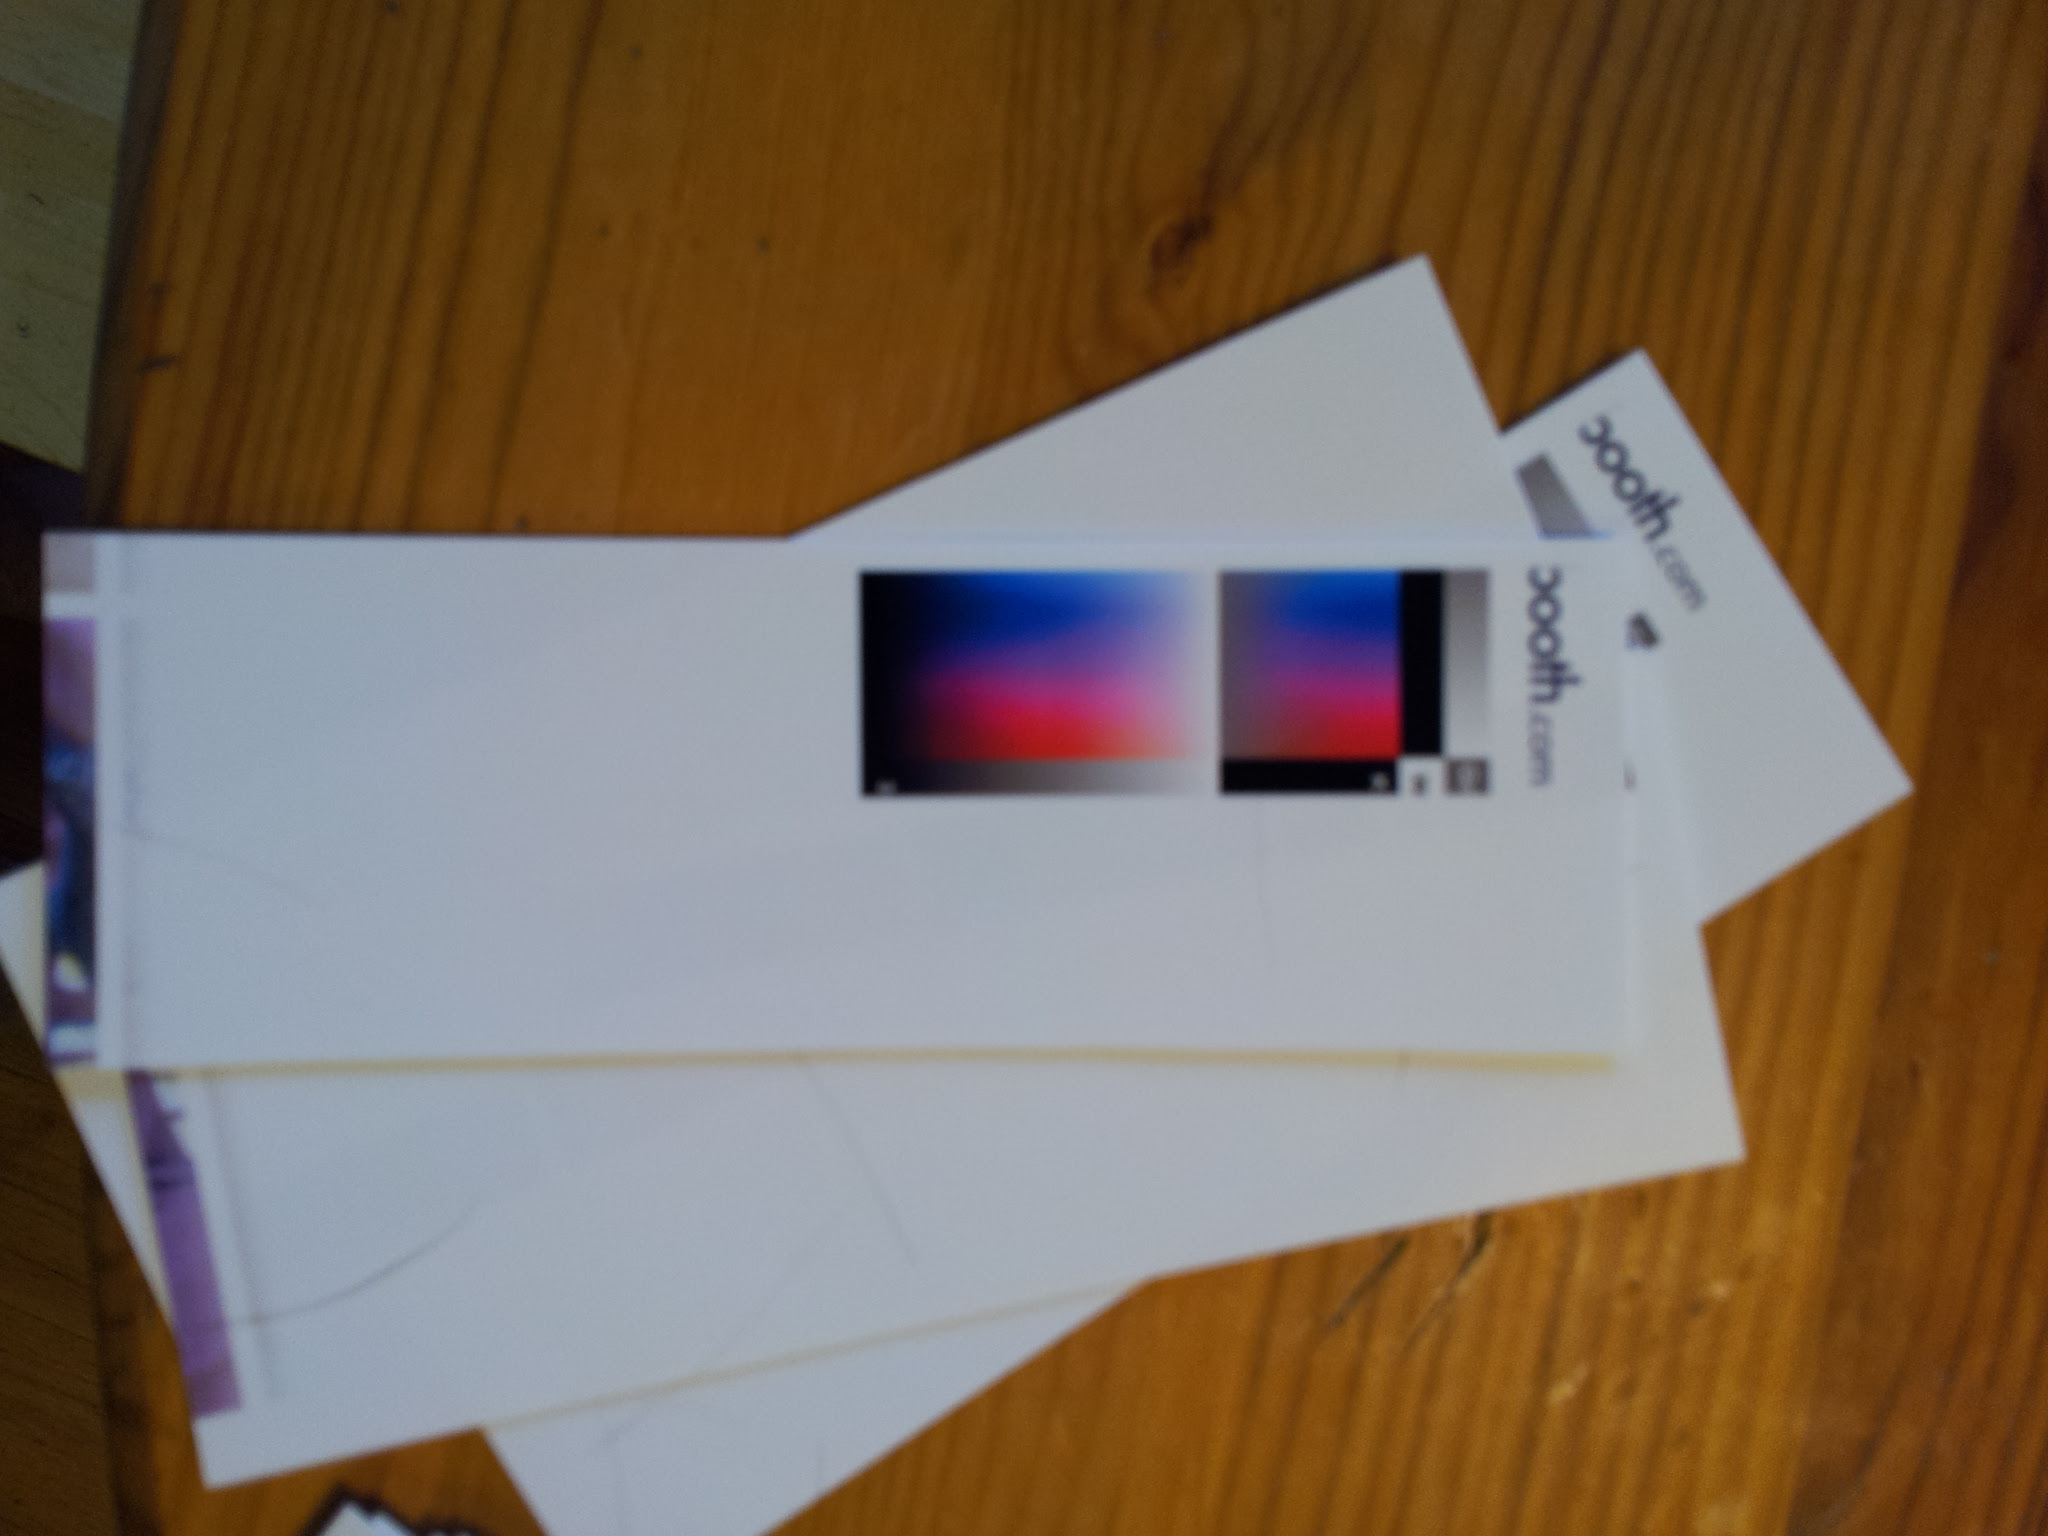 1x3 2x6 Photo Paper Printing Offset Sparkbooth Questions